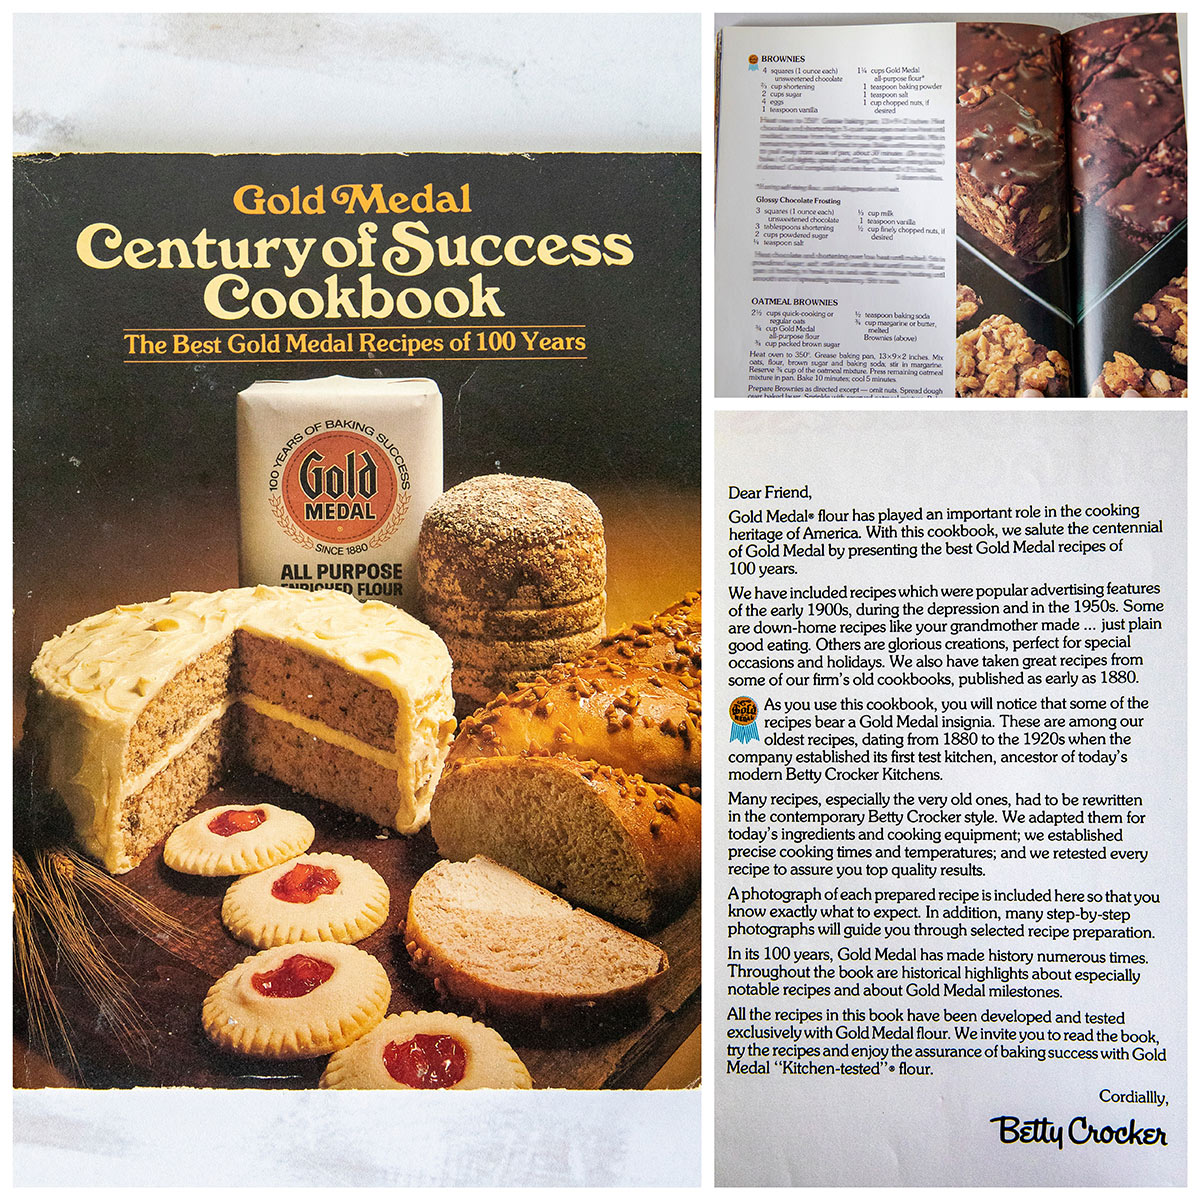 Gold Medal Century of Success Cookbook cover; brownie recipe and photo from the cookbook; and introduction of the cookbook